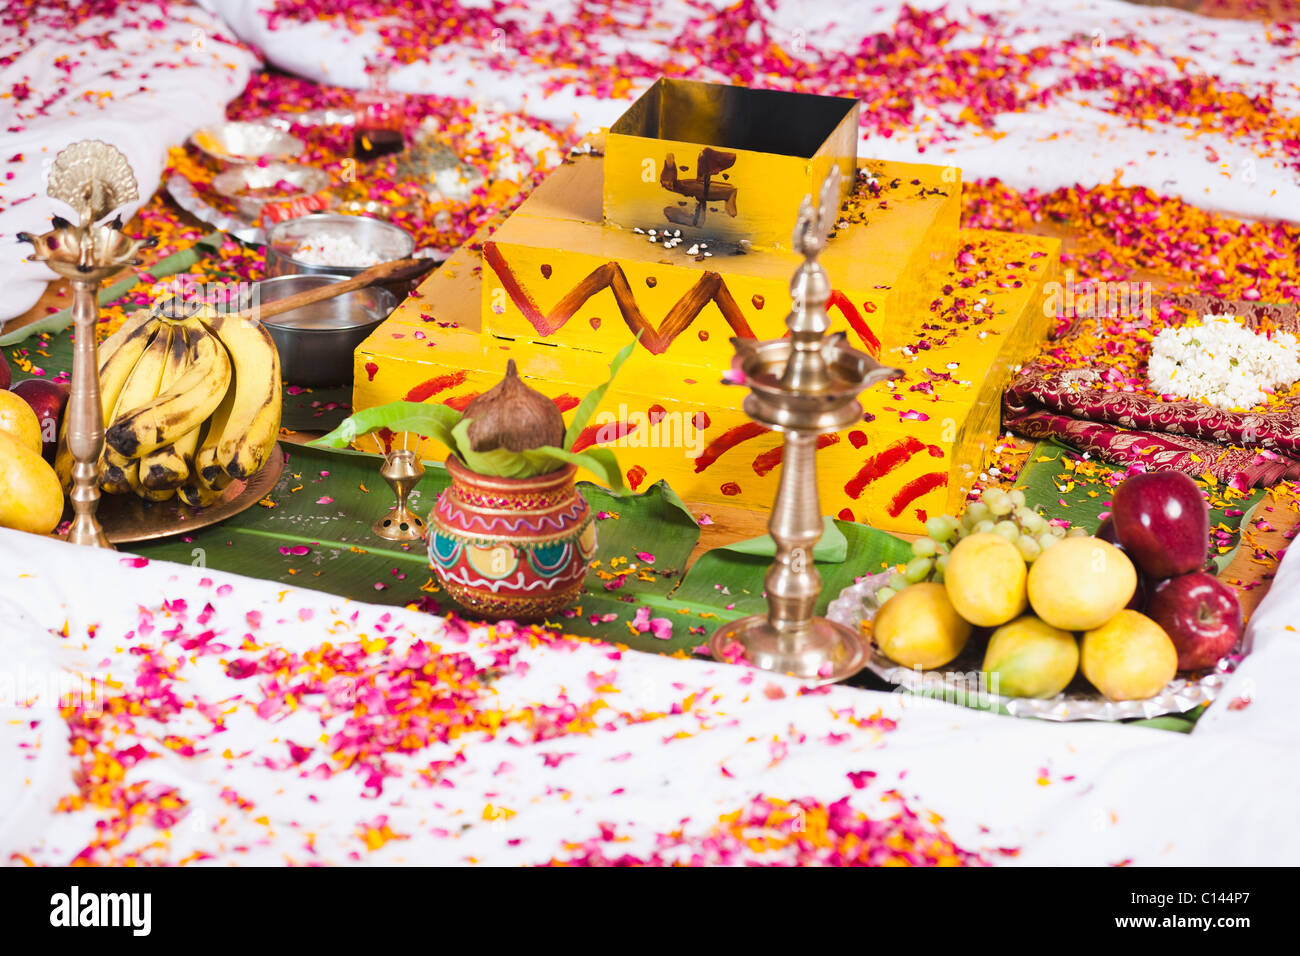 High Angle View Of A Havan Kund At The Wedding Mandap During South